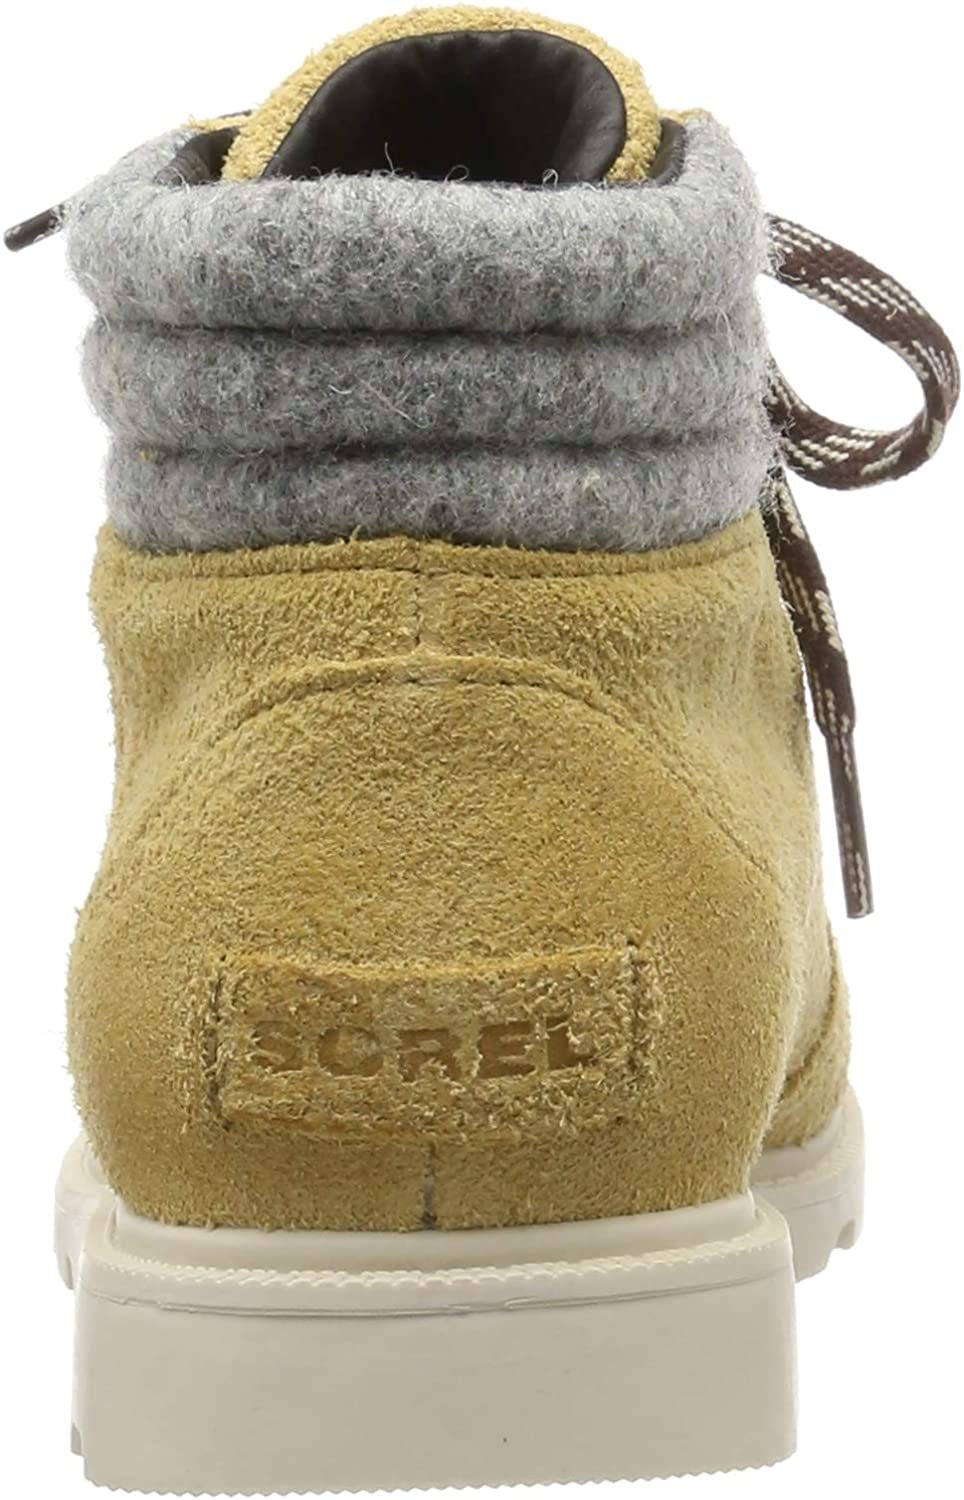 Sorel Women's Ainsley Conquest Boots, Beige Curry